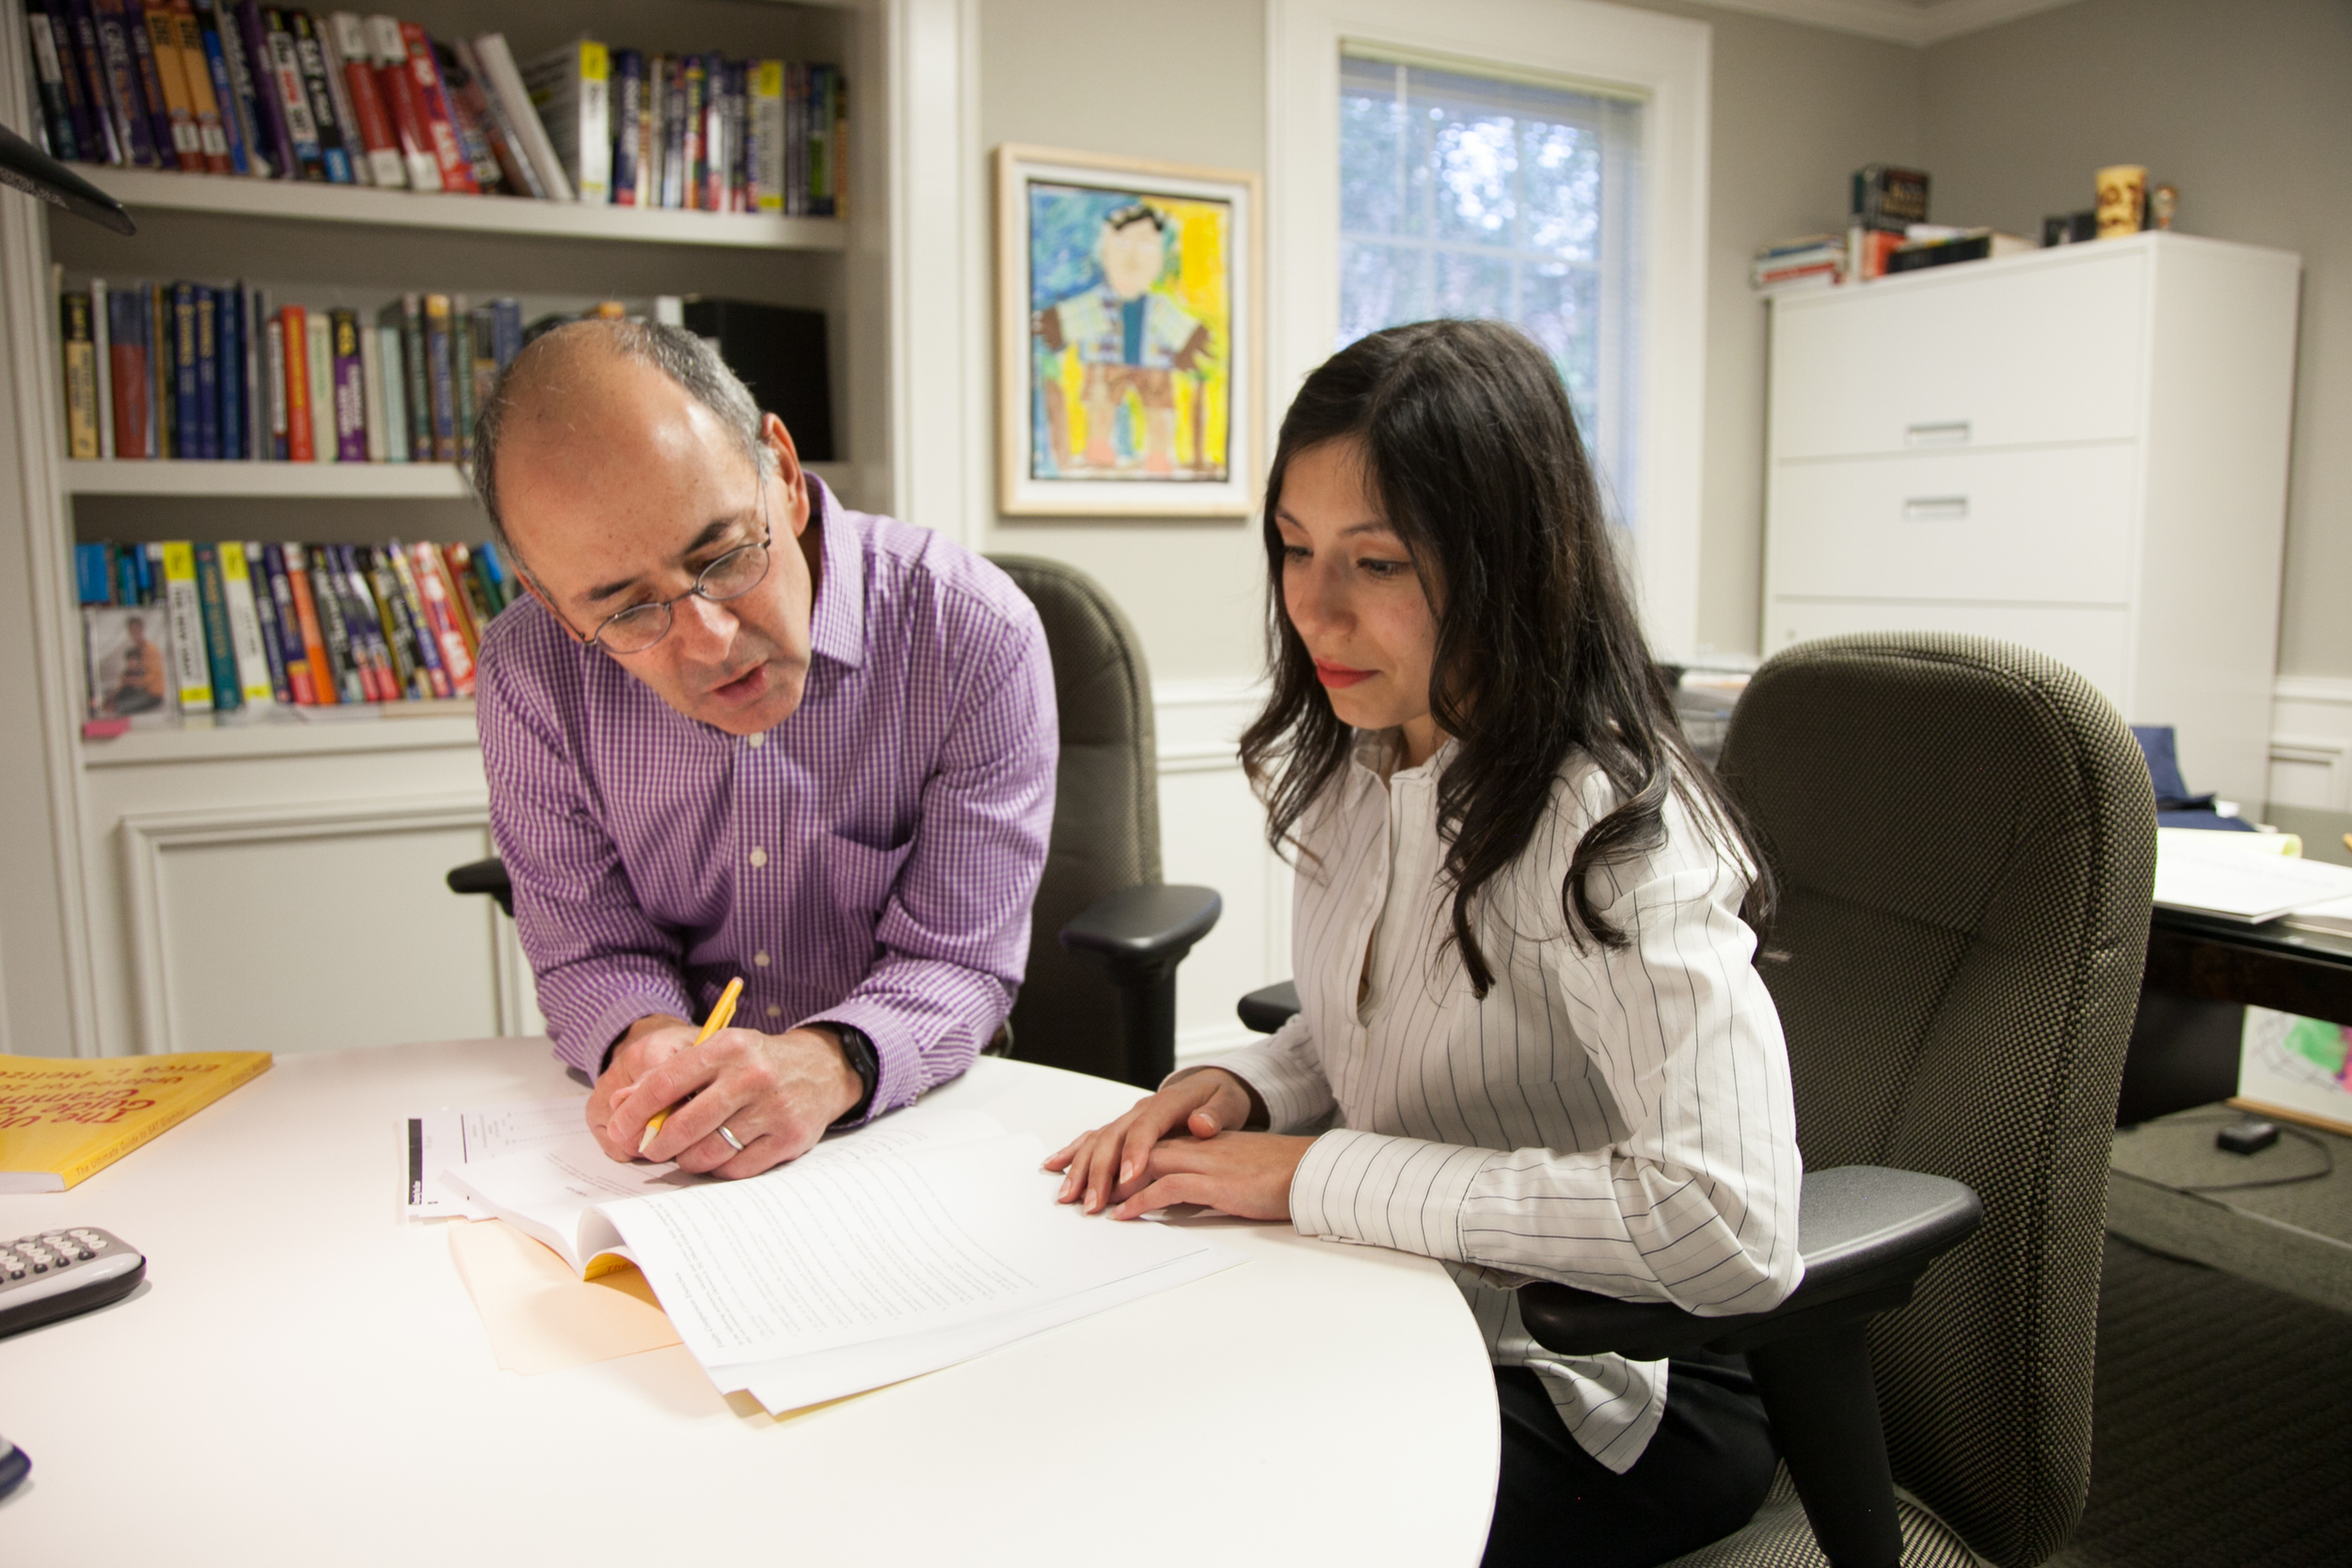 One-on-one tutoring helps every student stay engaged in the lesson at hand.